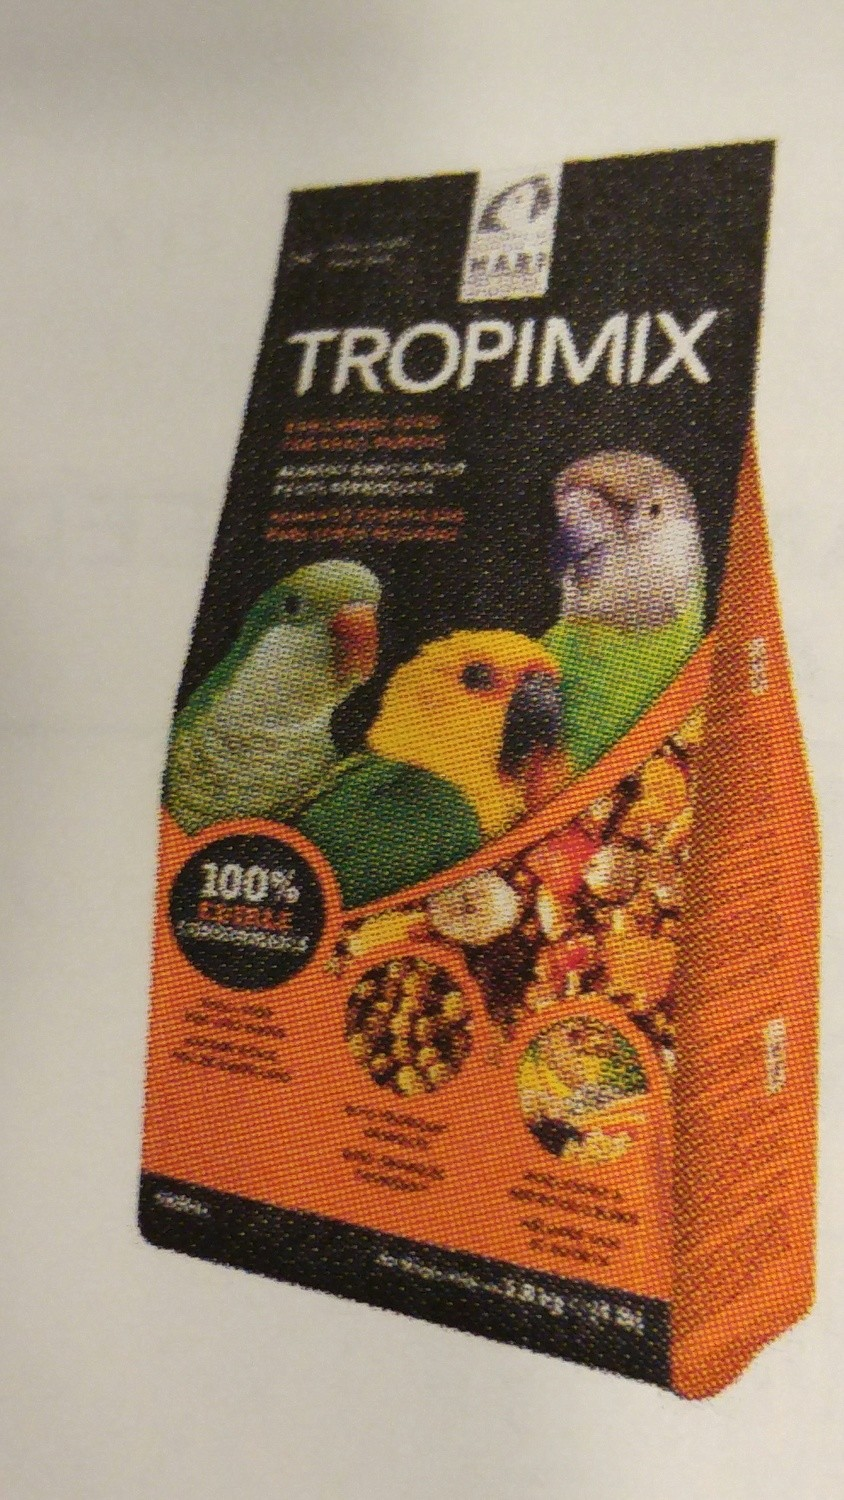 TROPIMIX FOR SMALL PARROTS